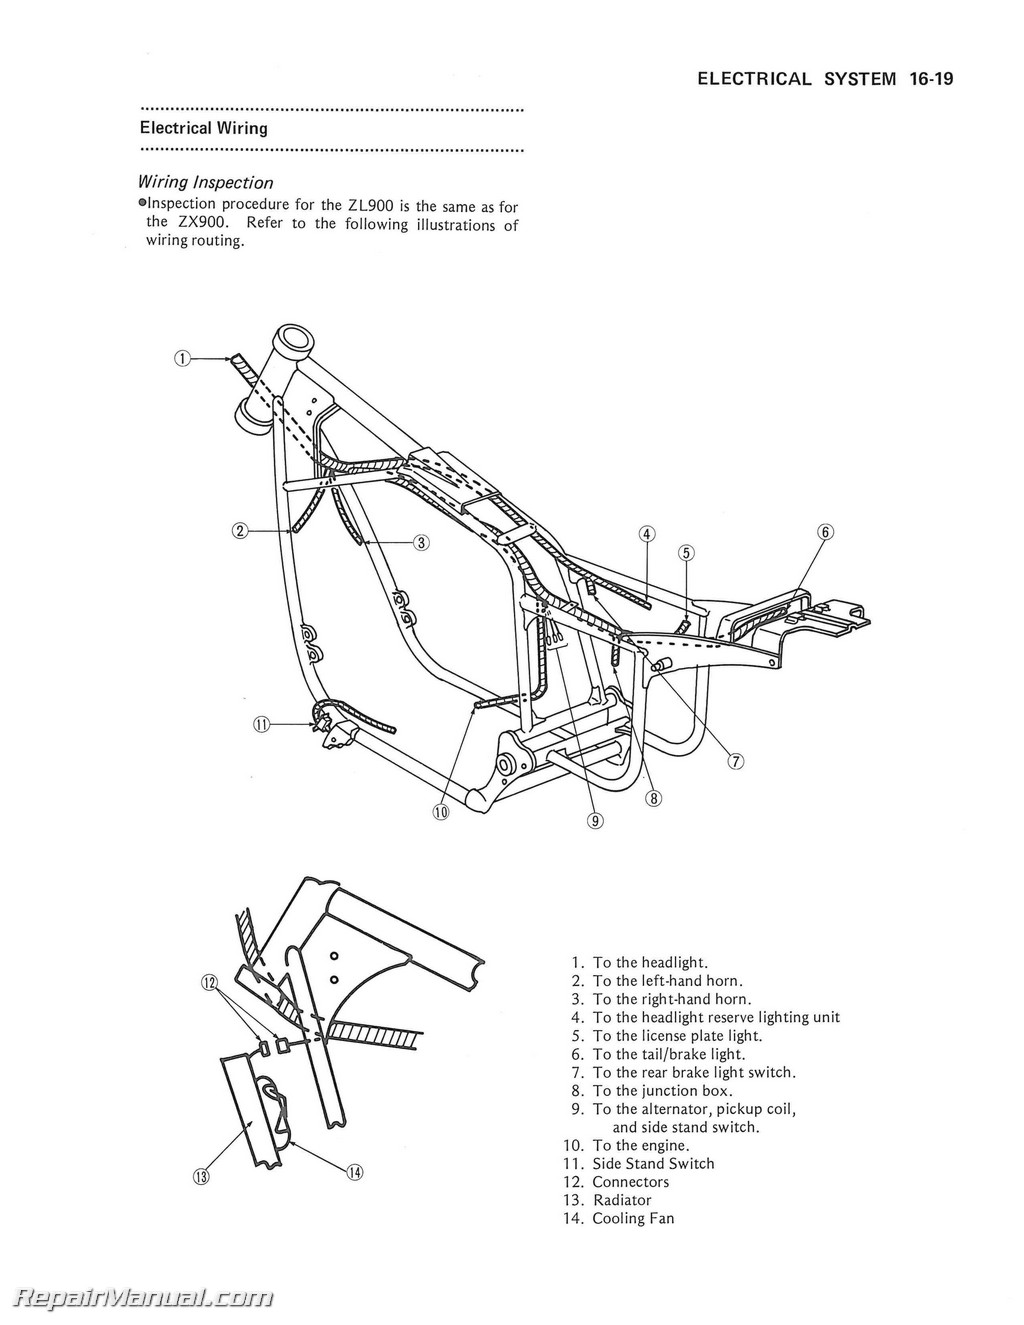 kawasaki atv 750 engine diagram get free image about wiring diagram